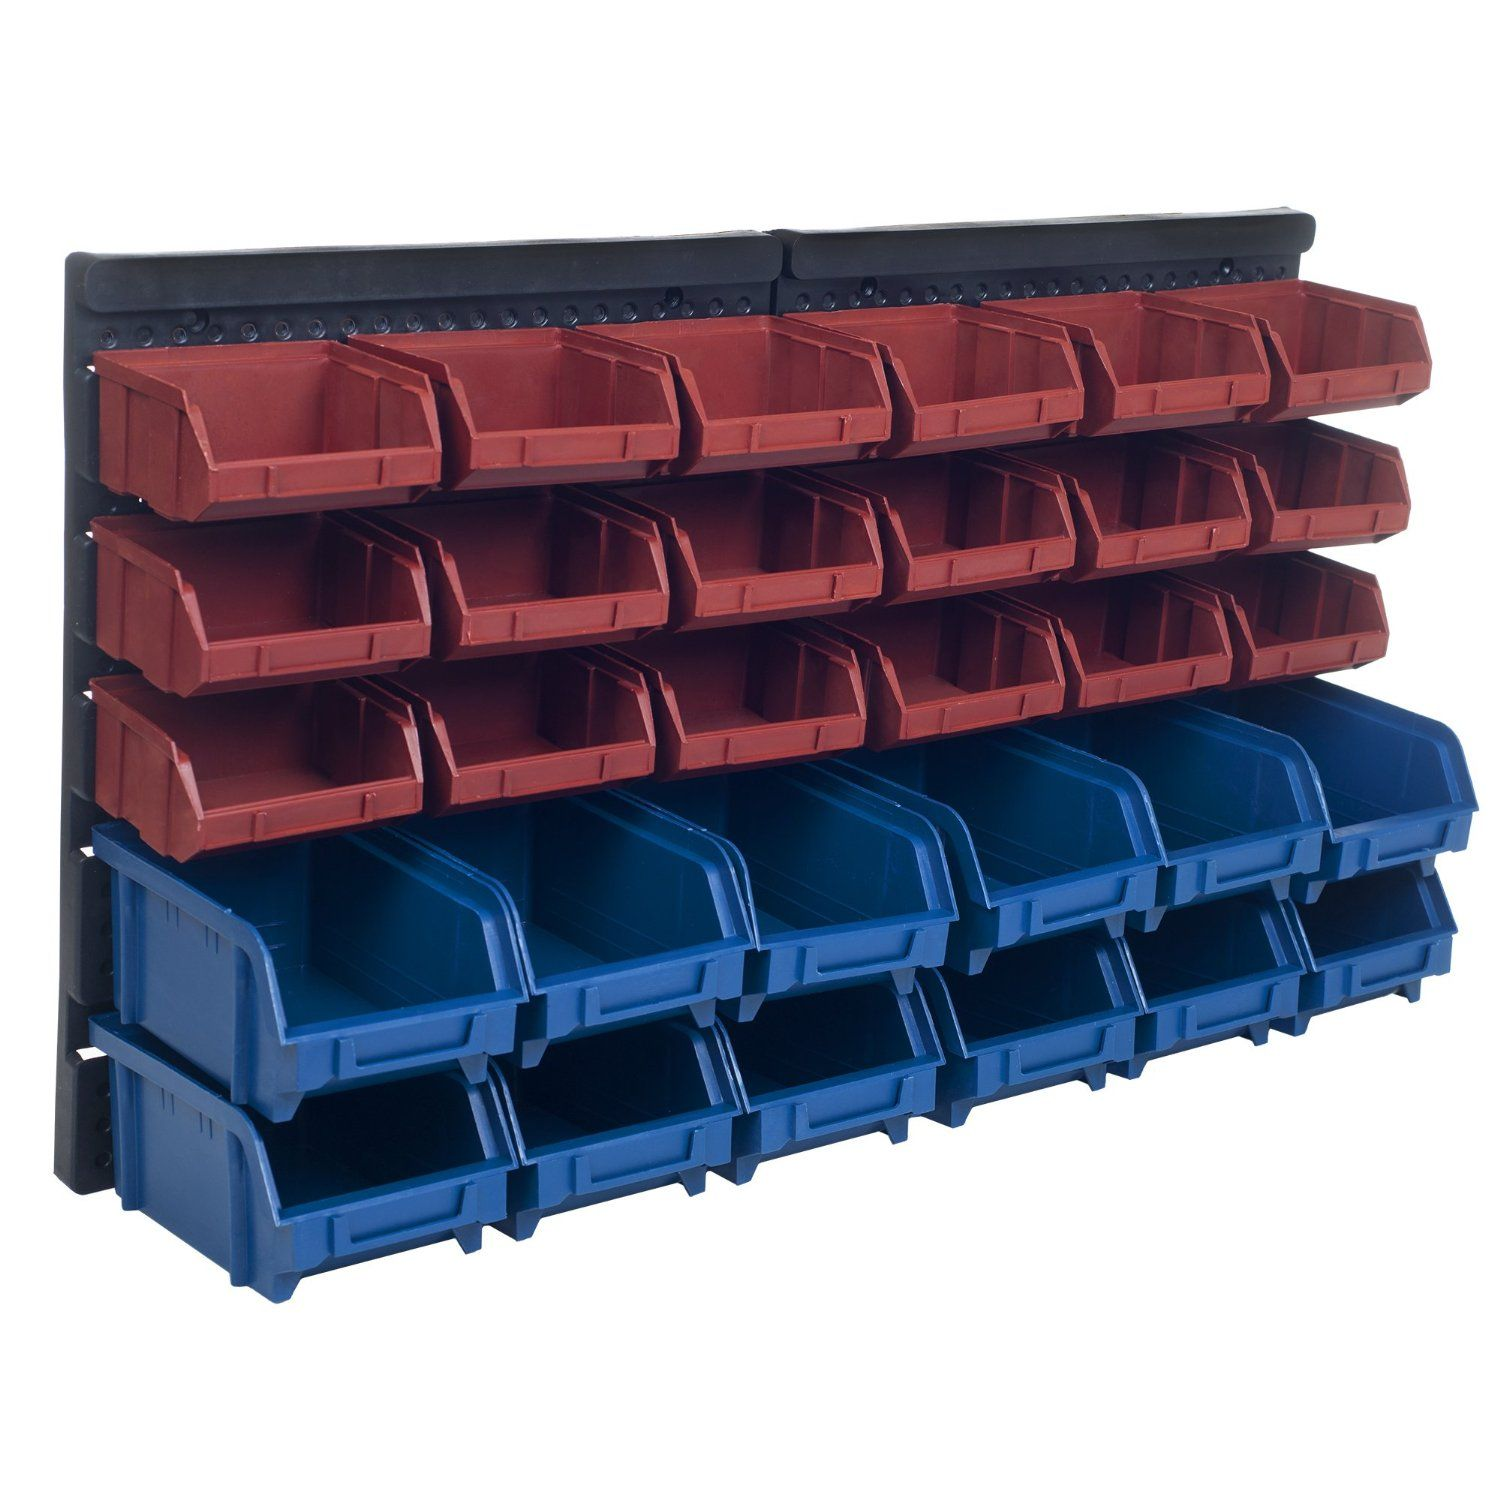 Stalwart 30 Bin Wall Mounted Parts Rack General Purpose Storage